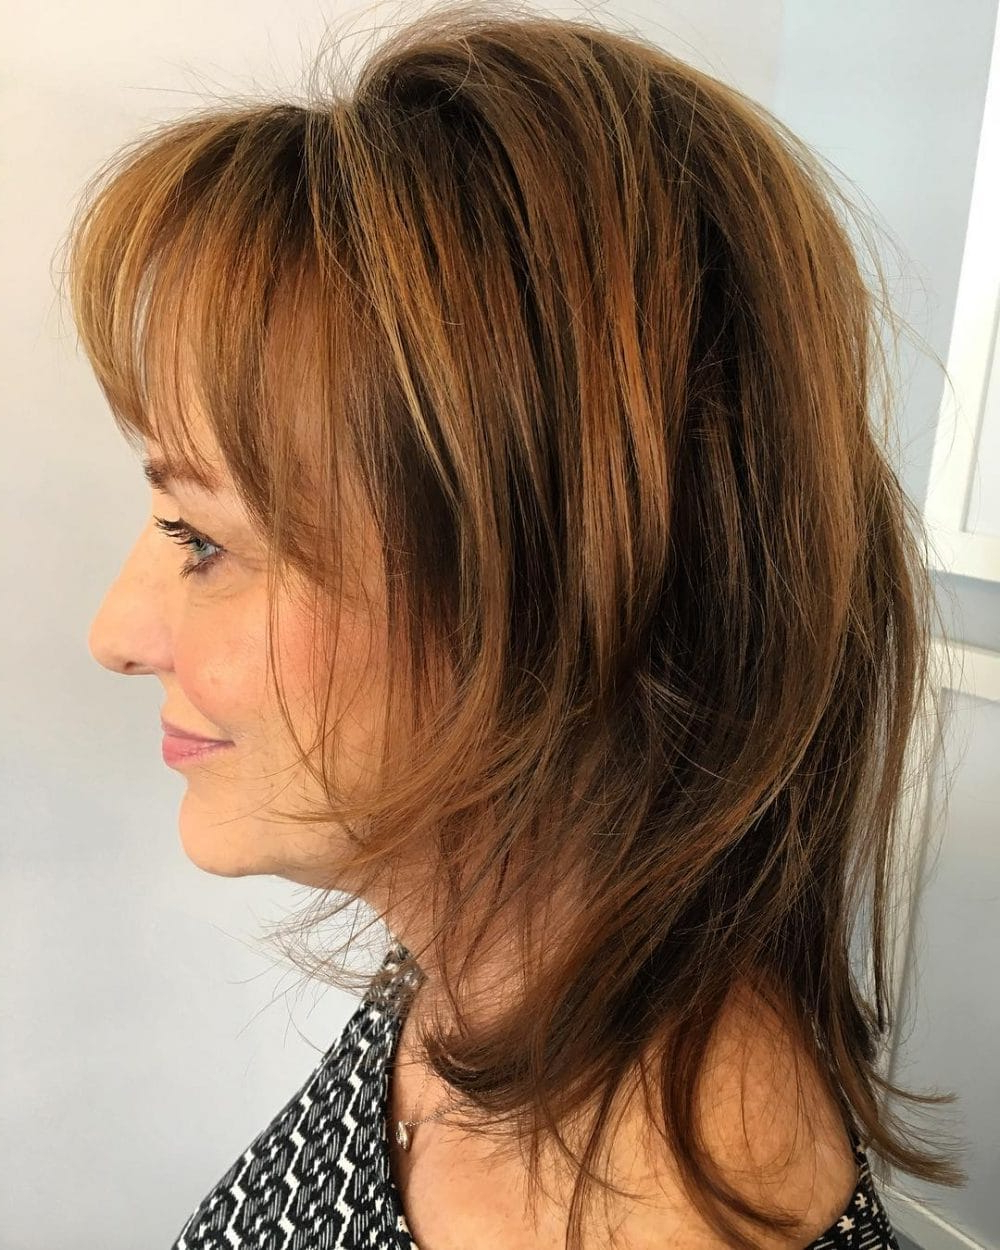 26 Modern Shag Haircuts To Try In 2019 In 2018 Dynamic Feathered Brunette Shag Haircuts (View 17 of 20)